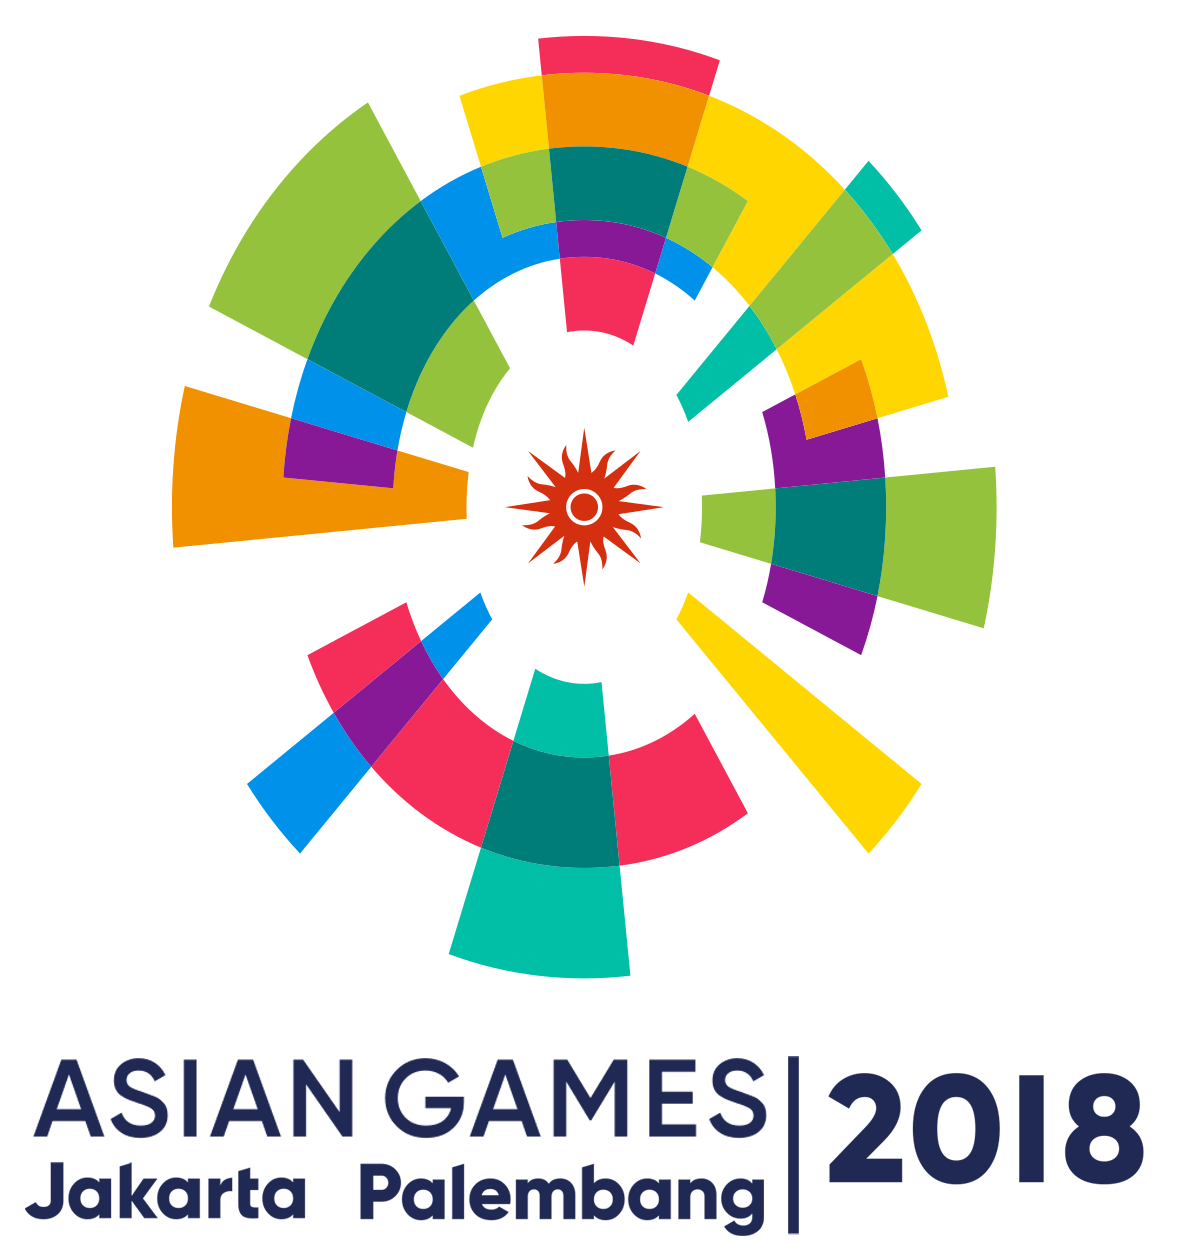 2 Person Car >> Asian Games Palembang 2018 Travel Package 5D4N - Tour From Bali | Tour From Bali